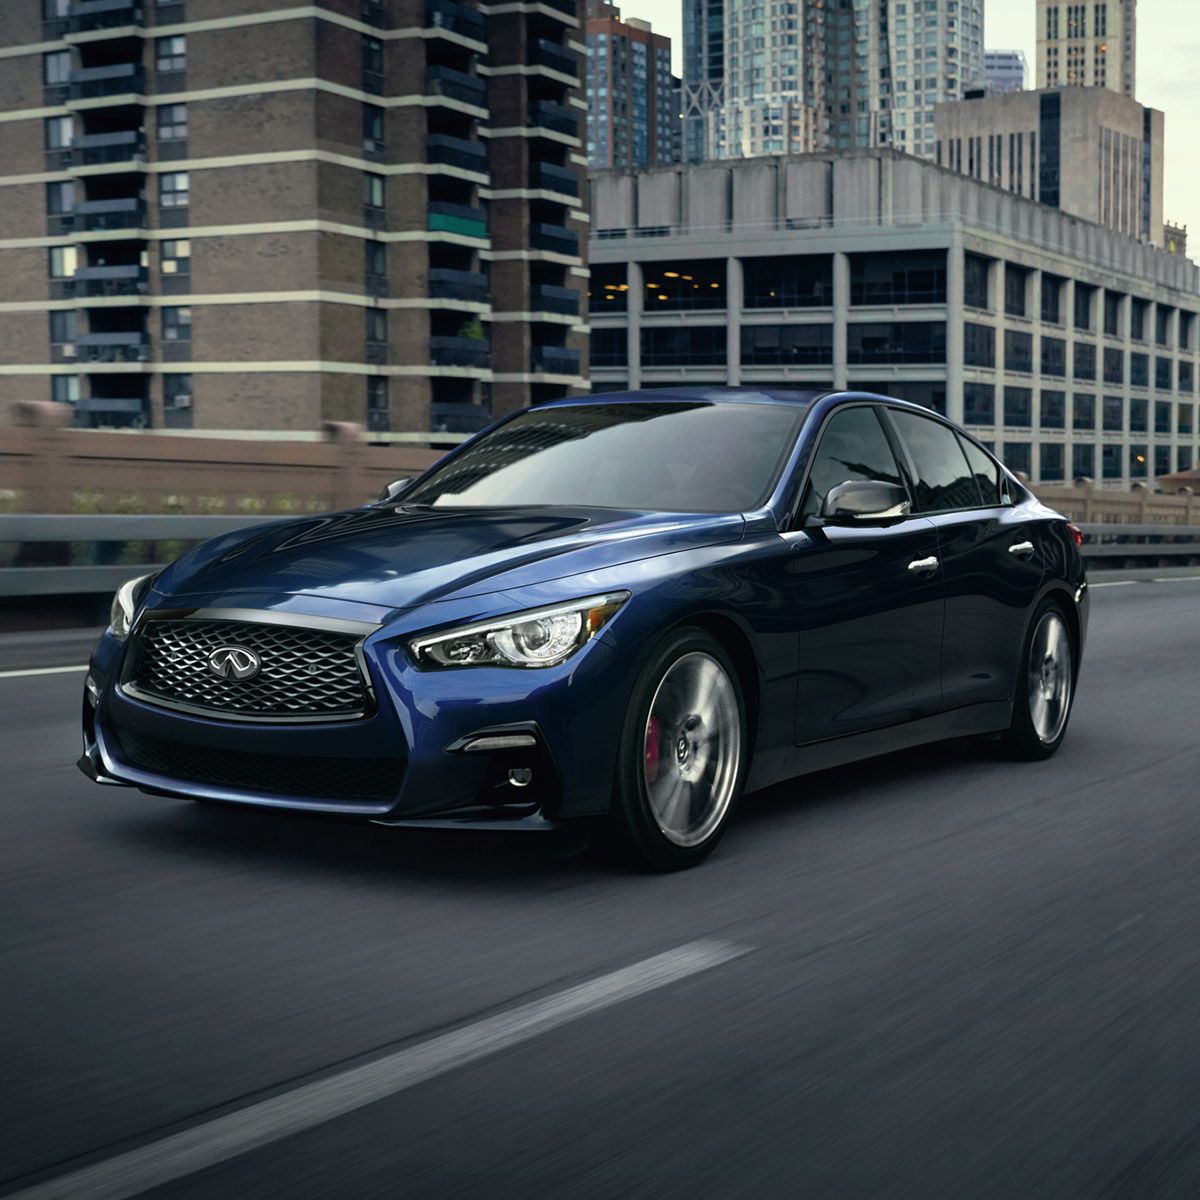 frontal profile of INFINITI Q50 sedan in blue color driving on top of a bridge with buildings in the background